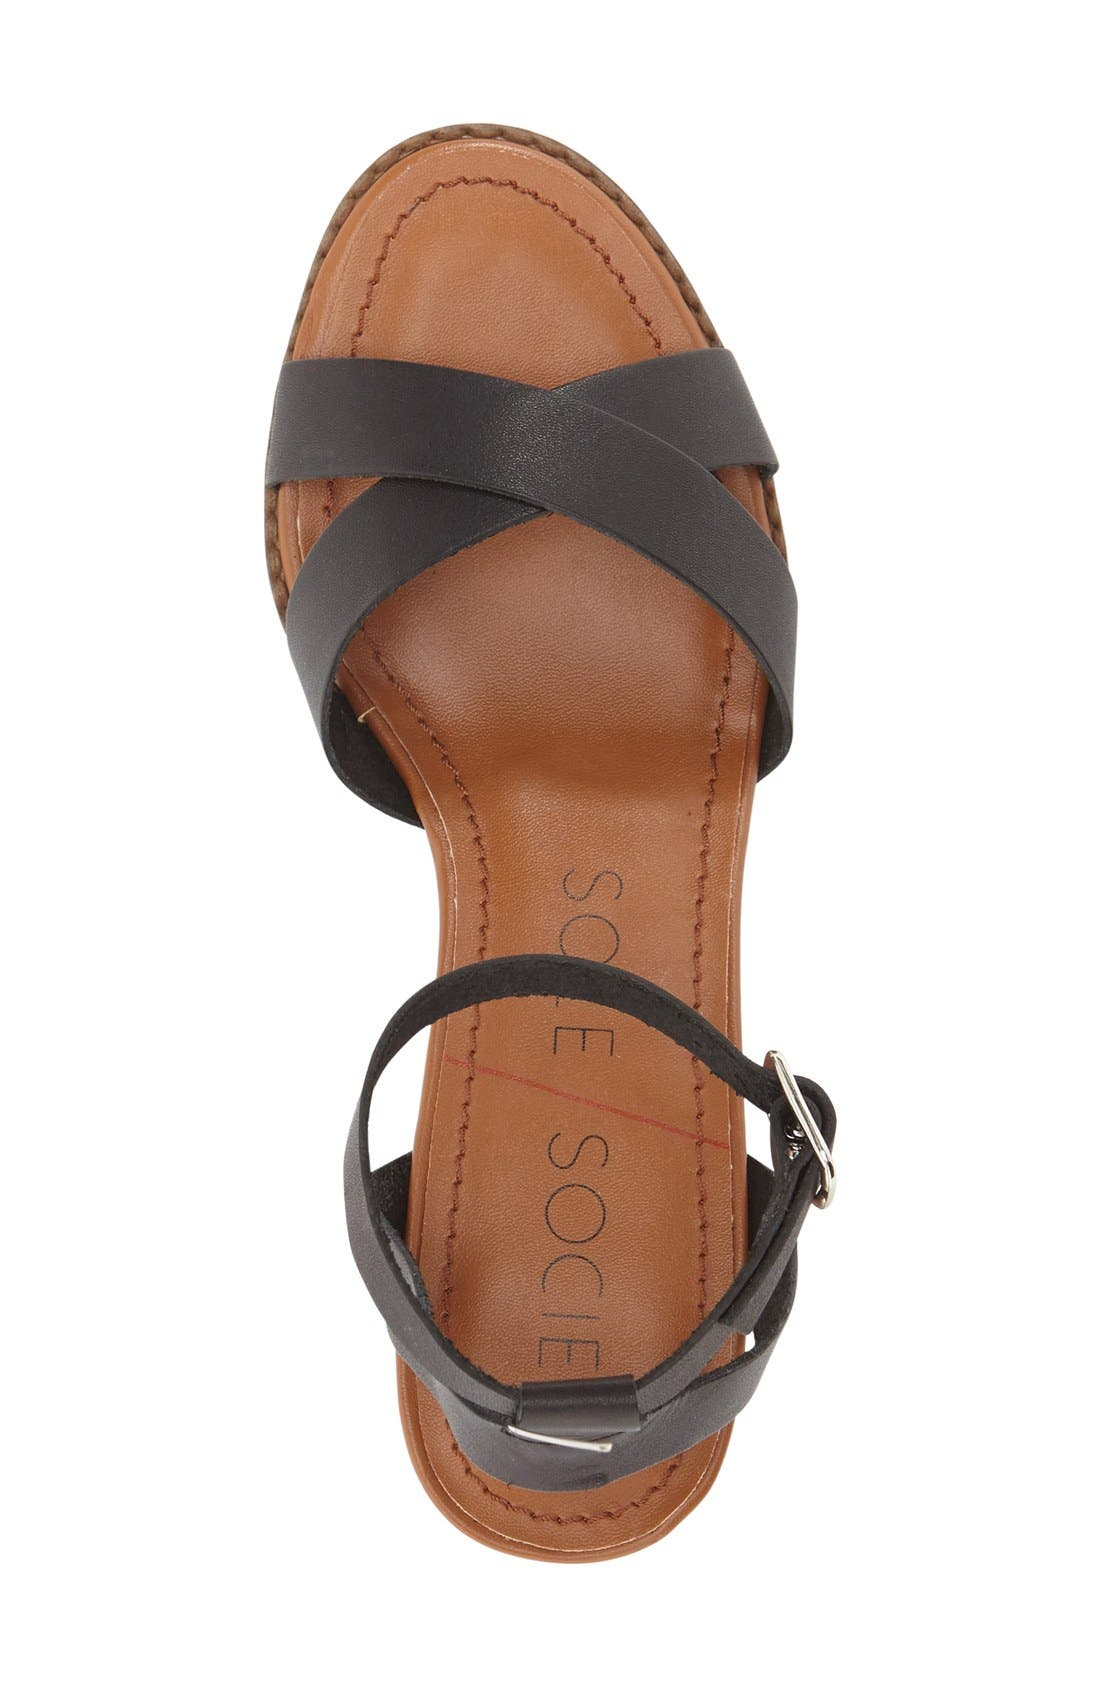 'Savannah' Sandal,                             Alternate thumbnail 2, color,                             002